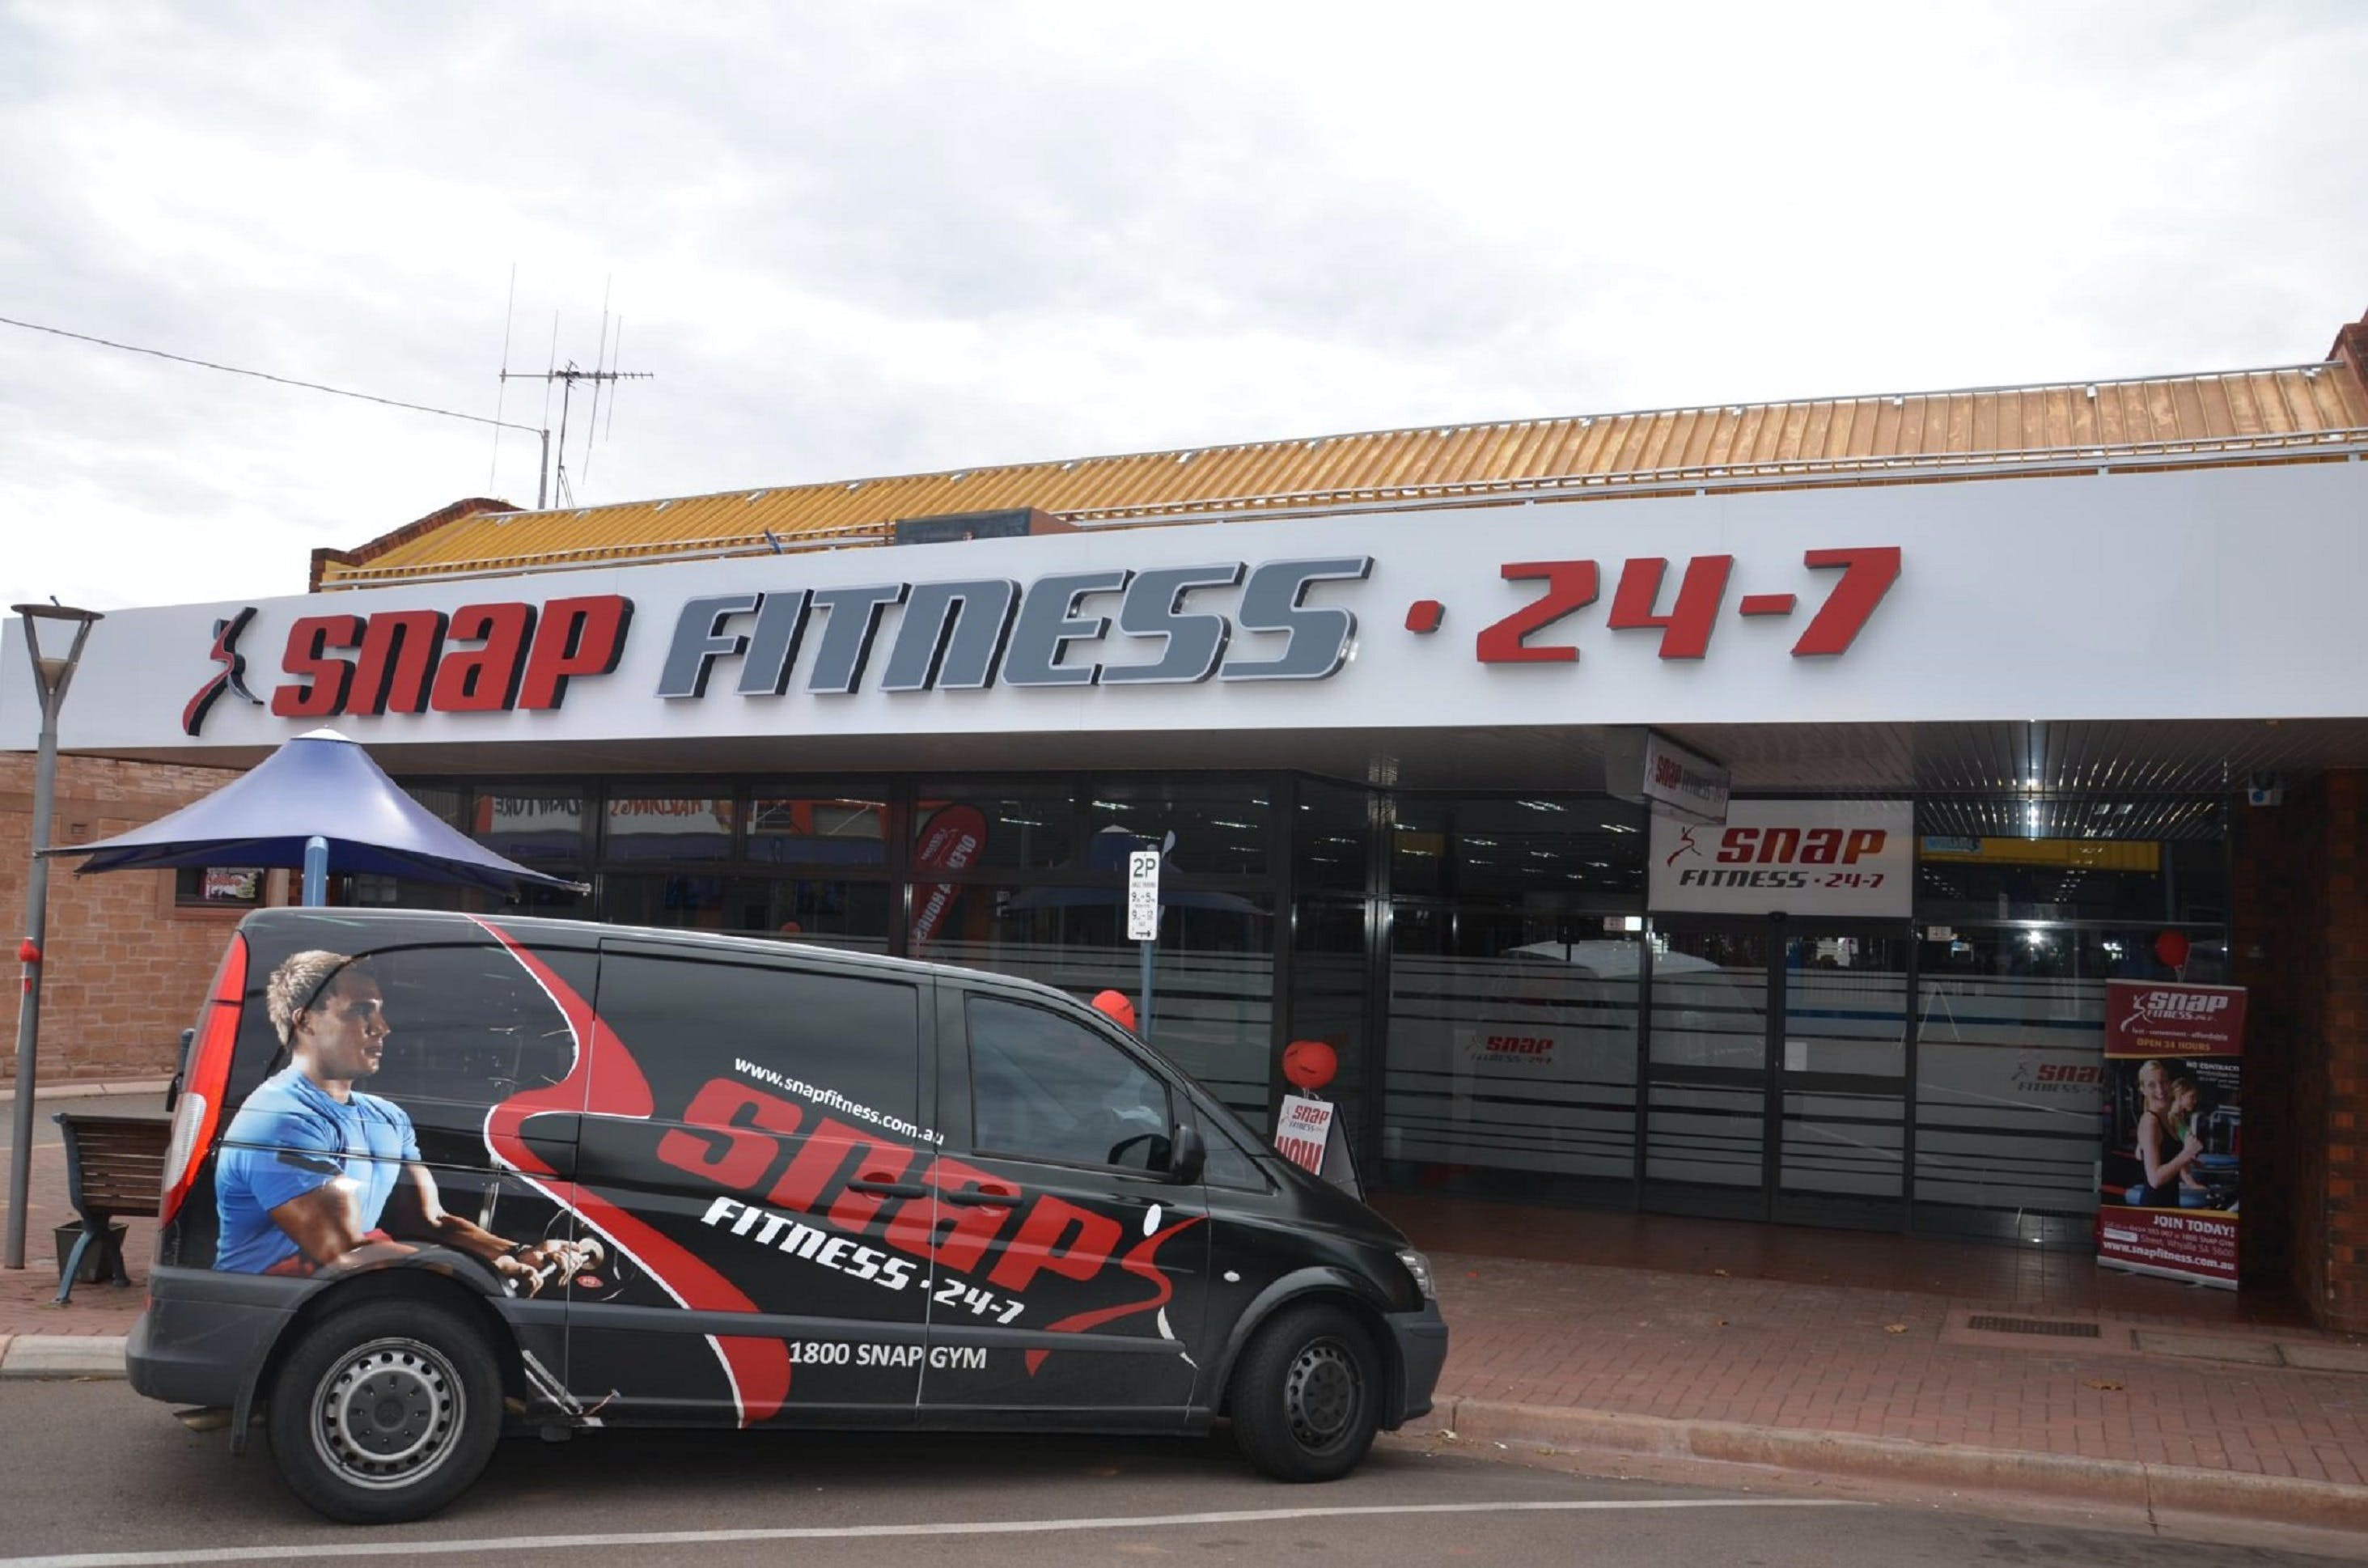 Snap Fitness Whyalla 24/7 gym - Accommodation Sunshine Coast